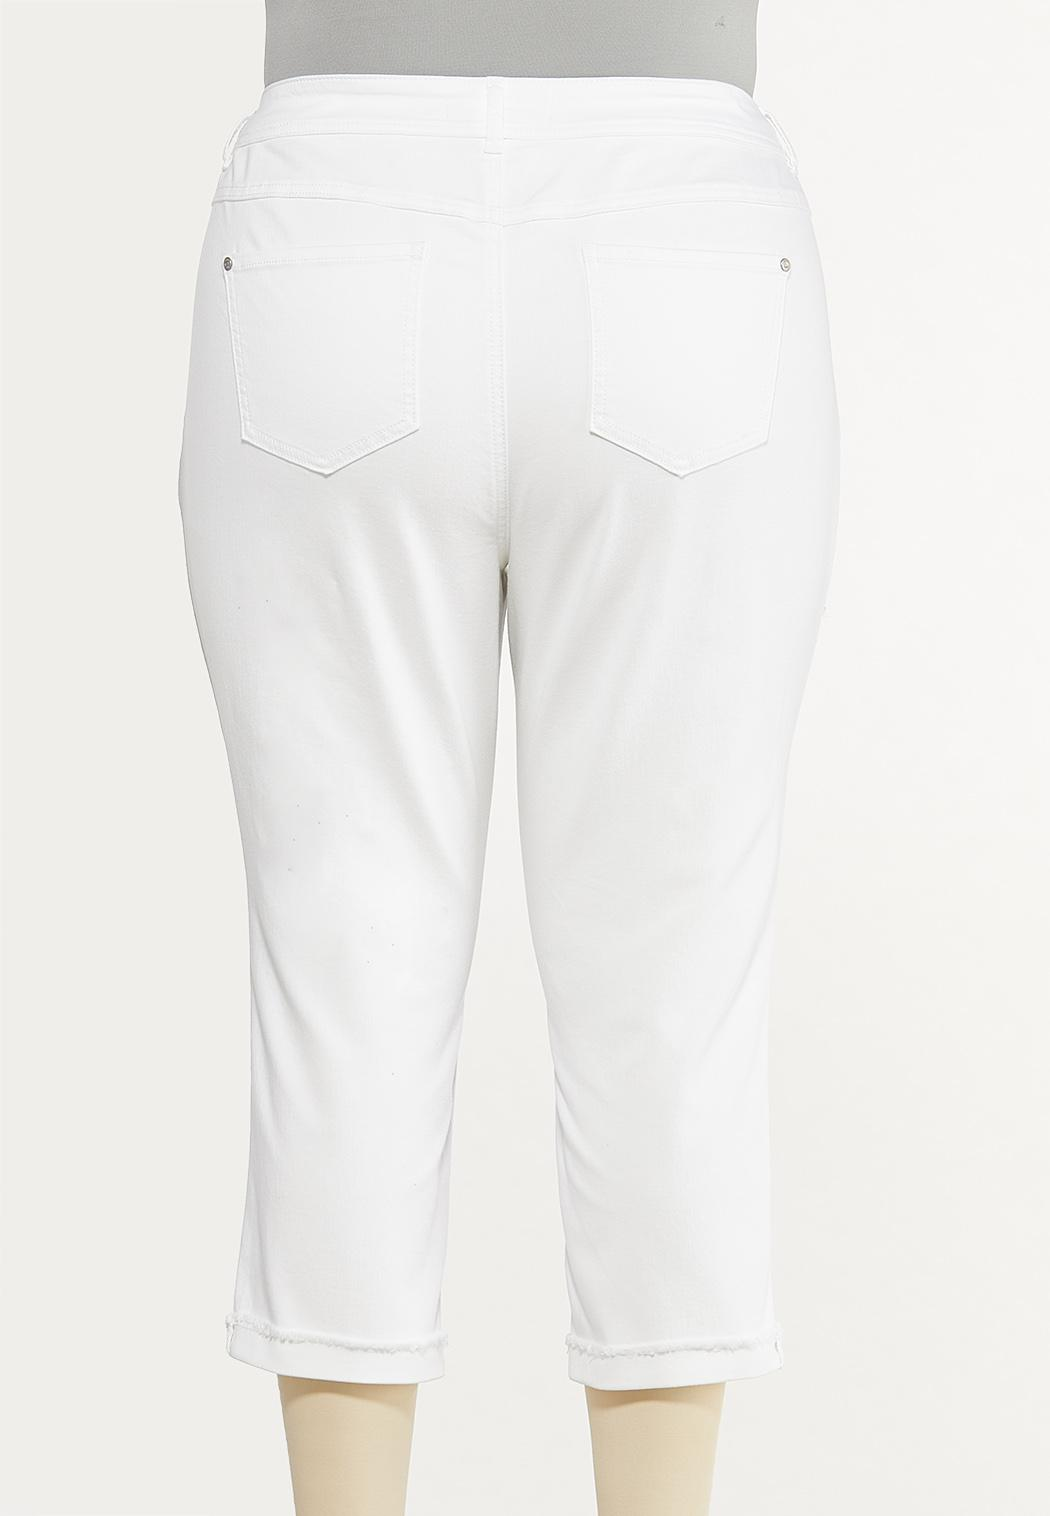 Plus Size White Cropped Girlfriend Jeans (Item #44568622)